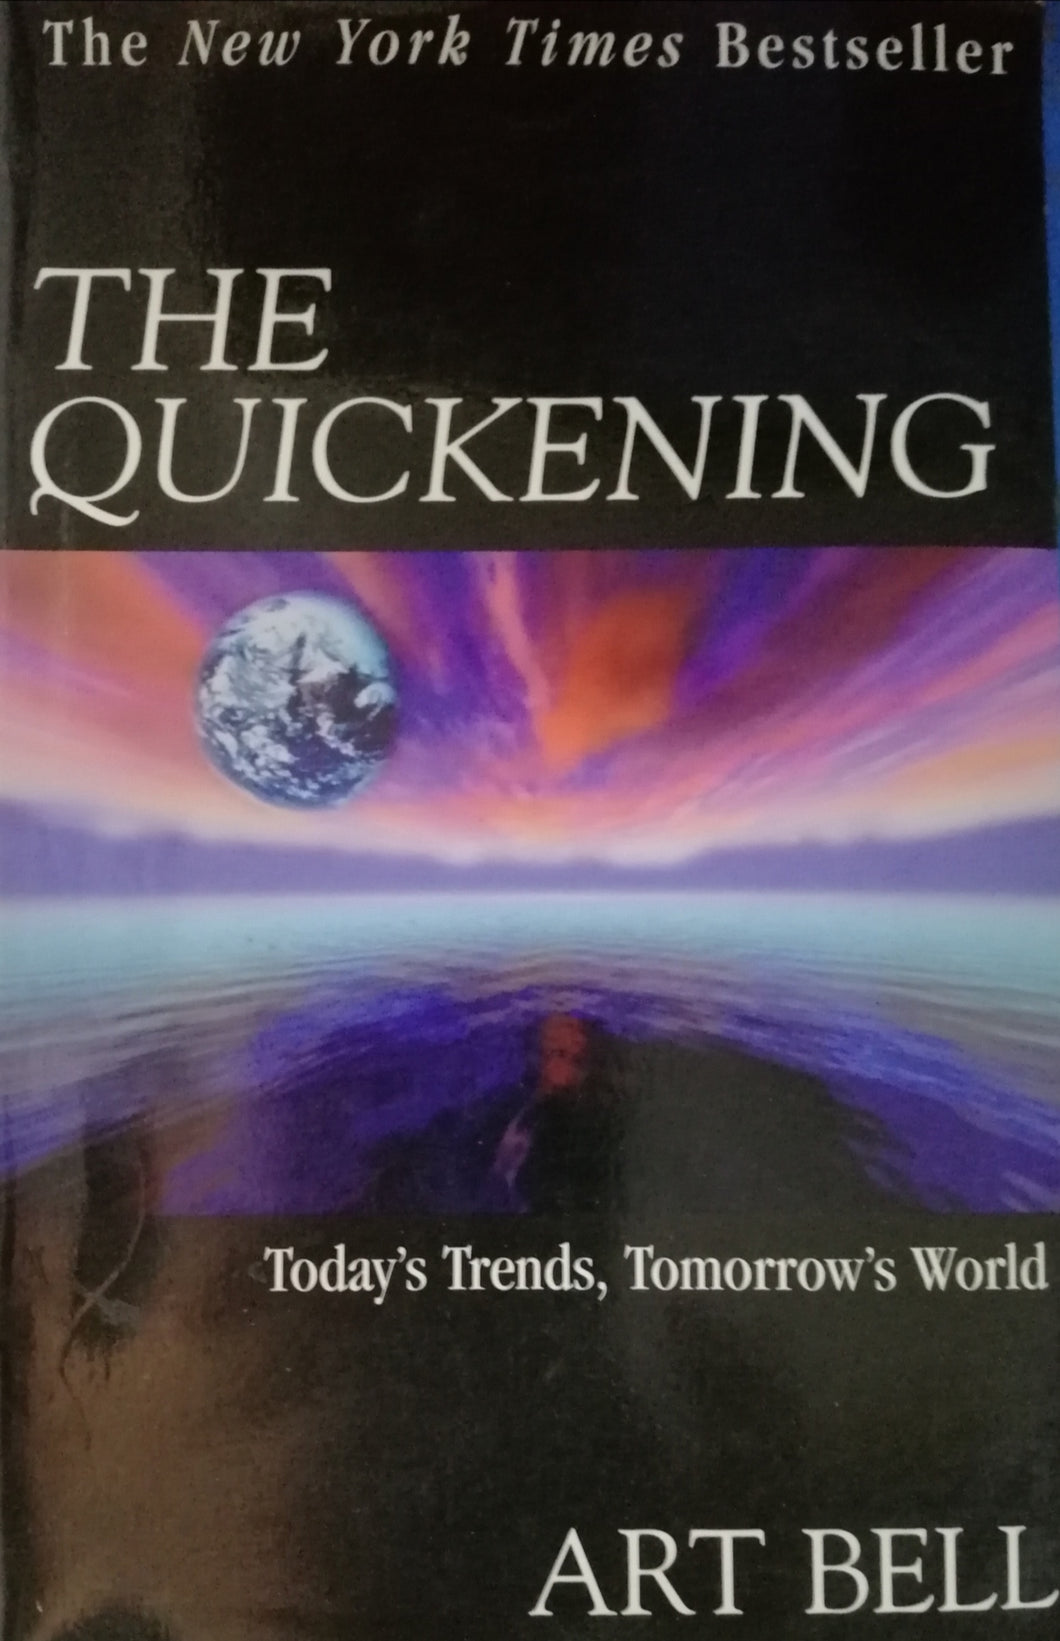 The Quickening Today's Trends,Tomorrow's World by Art Bell